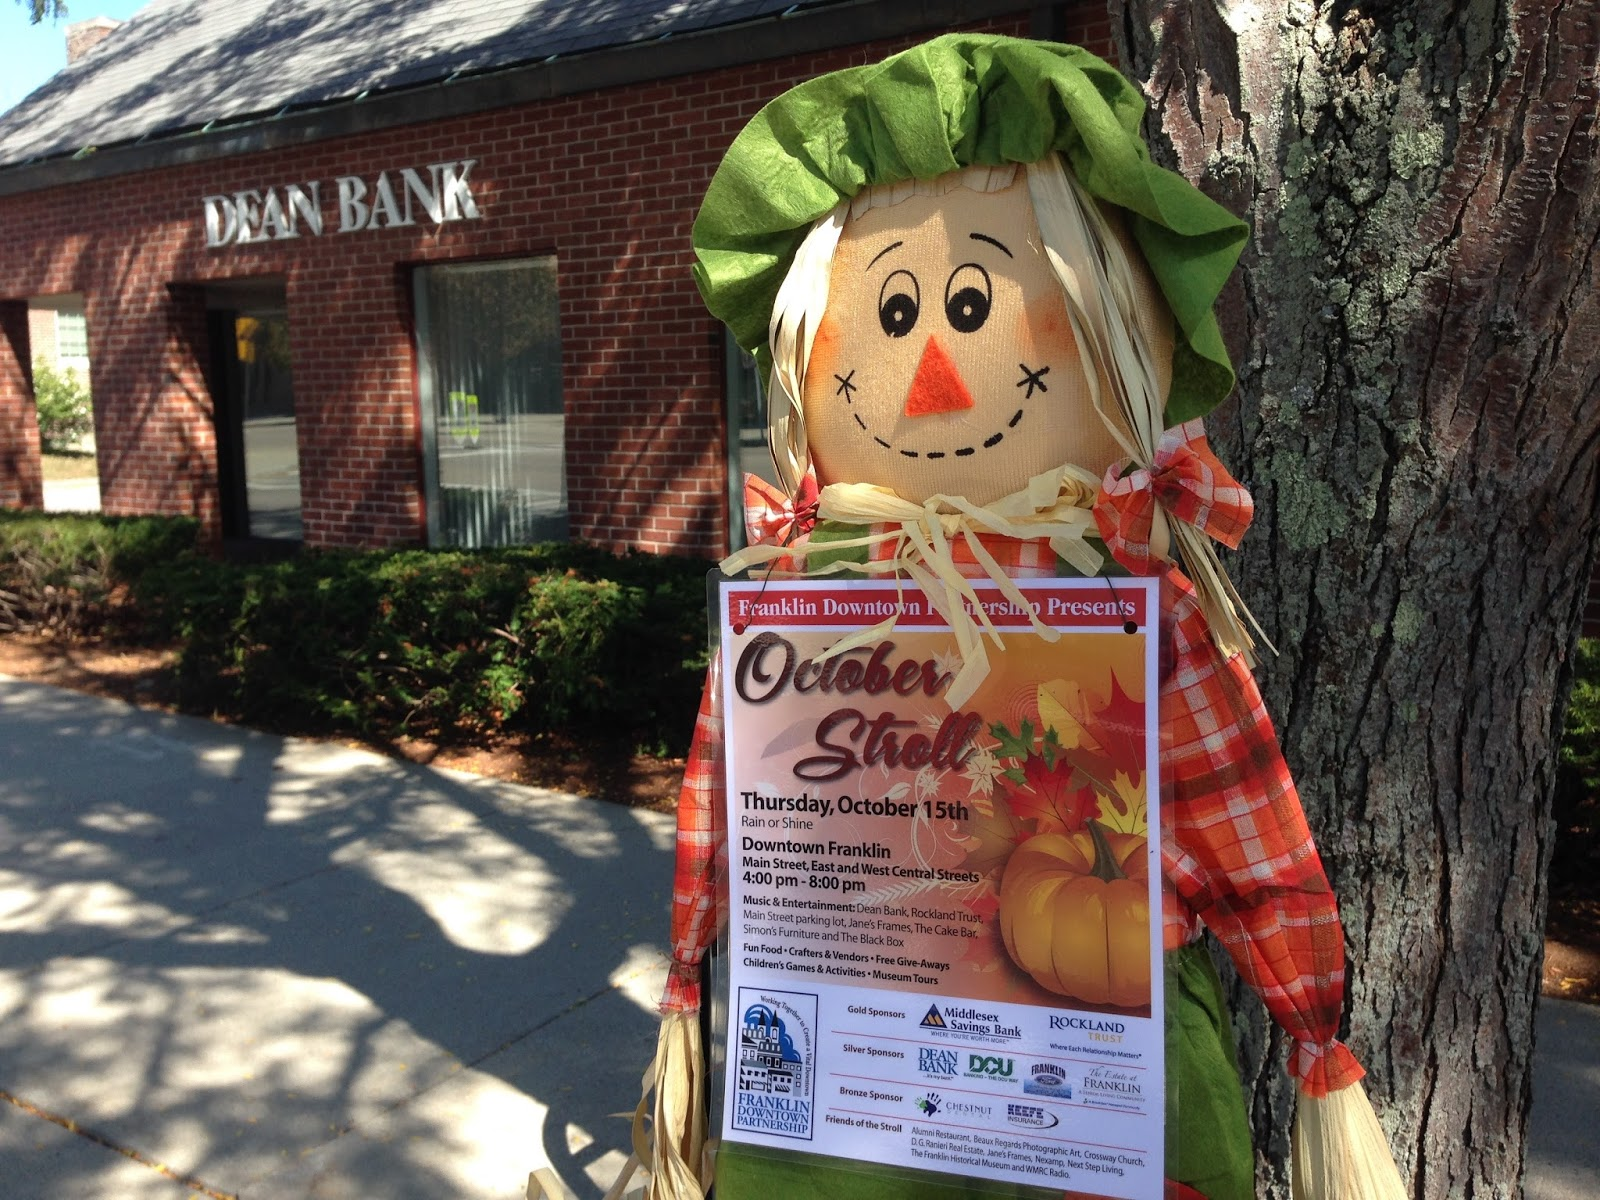 Silver Sponsor Dean Bank will give out pumpkins and decorating kits at the October Stroll